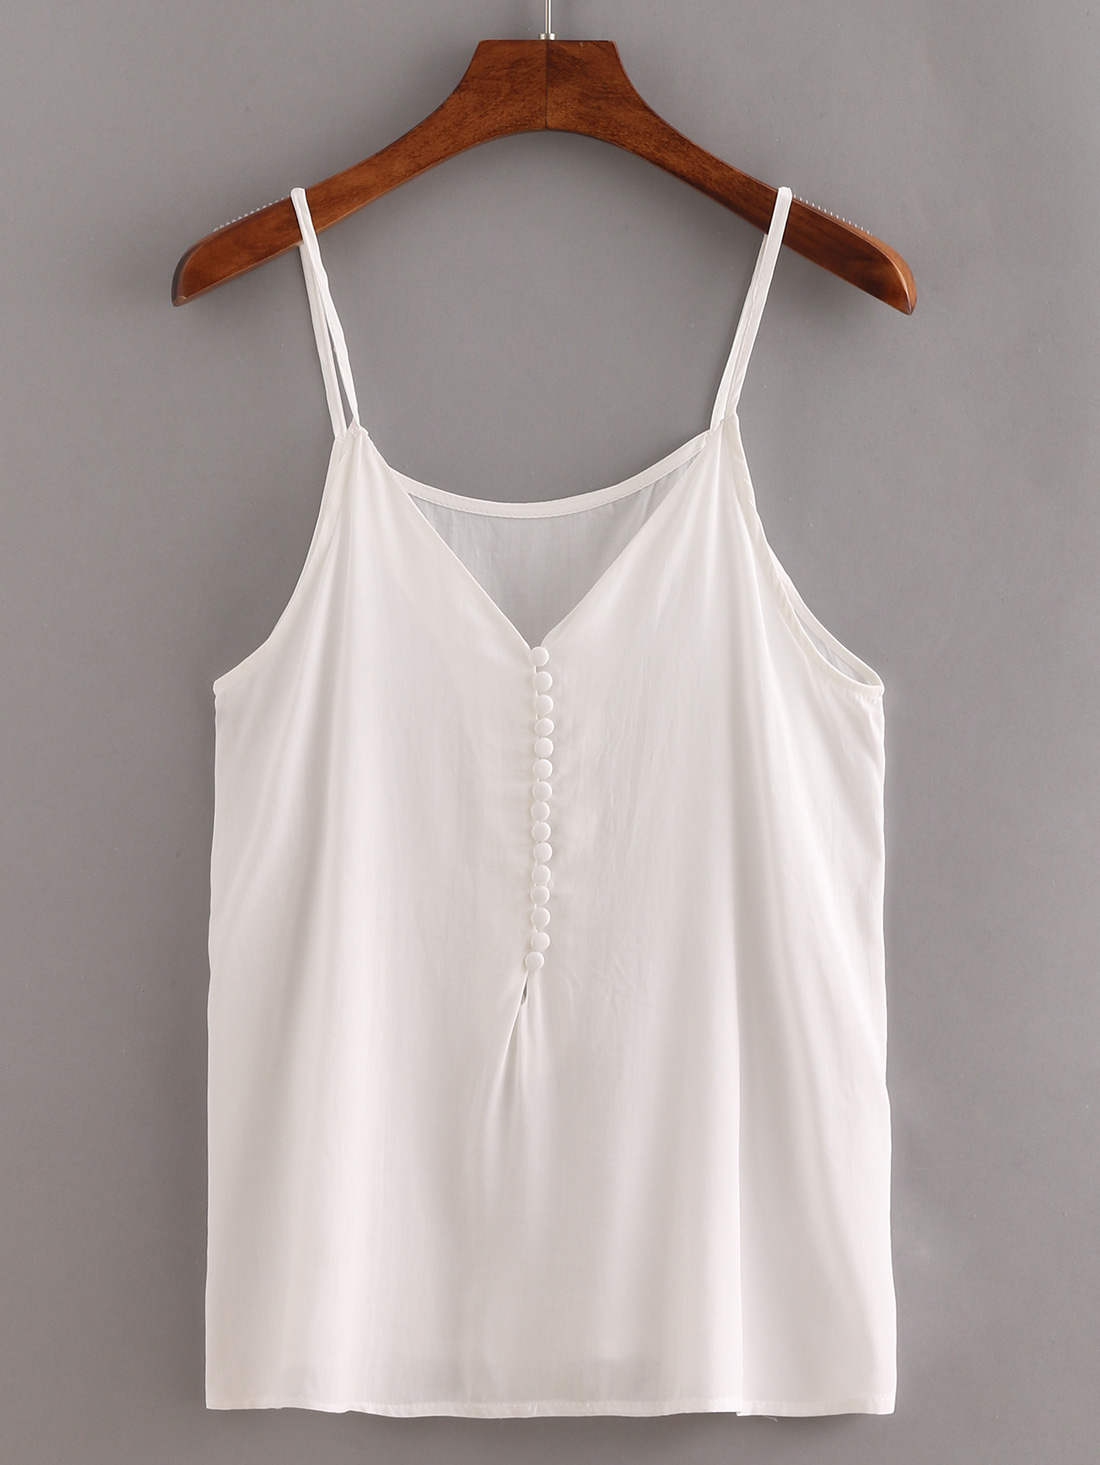 V-Neck Buttoned Front Cami Top - White -SheIn(Sheinside)